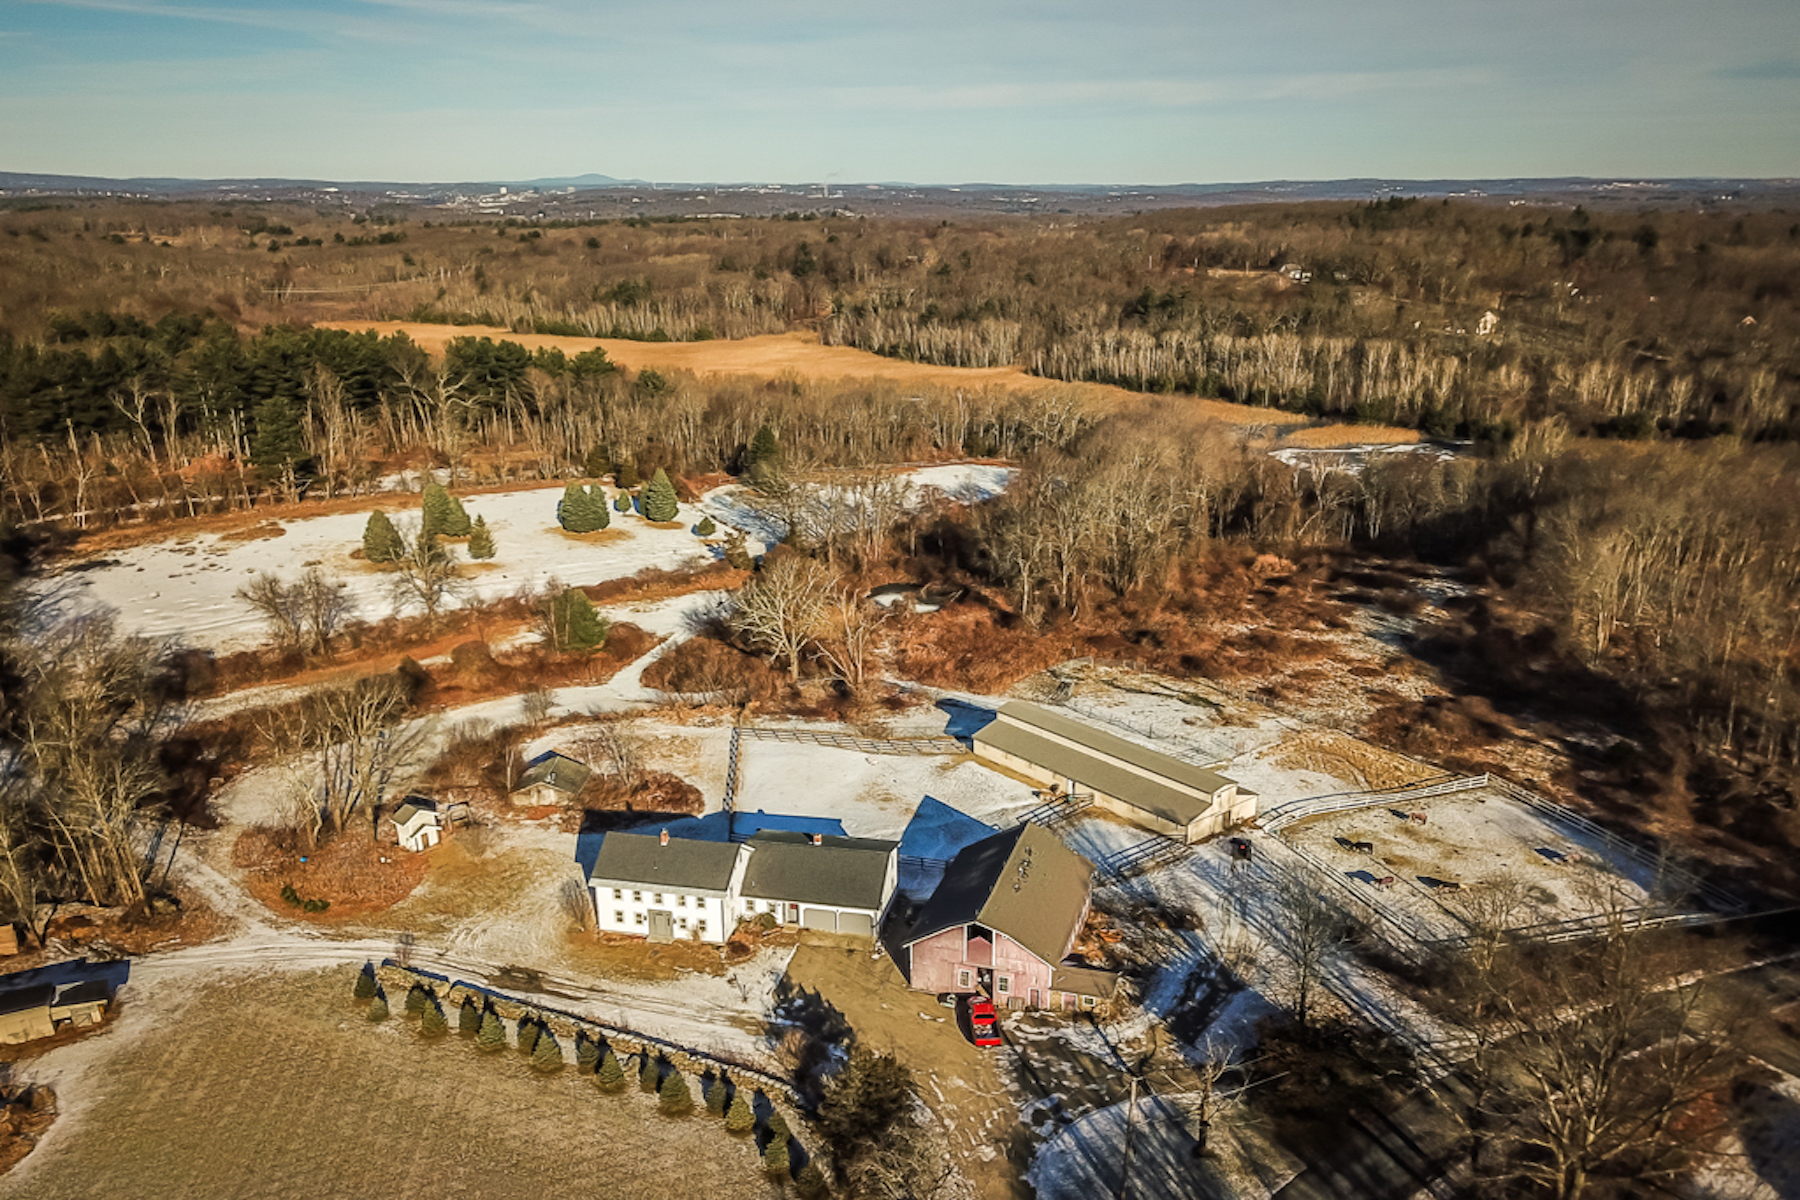 Single Family Home for Active at Fabulous Equestrian Property 53 Burbank Road Sutton, Massachusetts 01590 United States